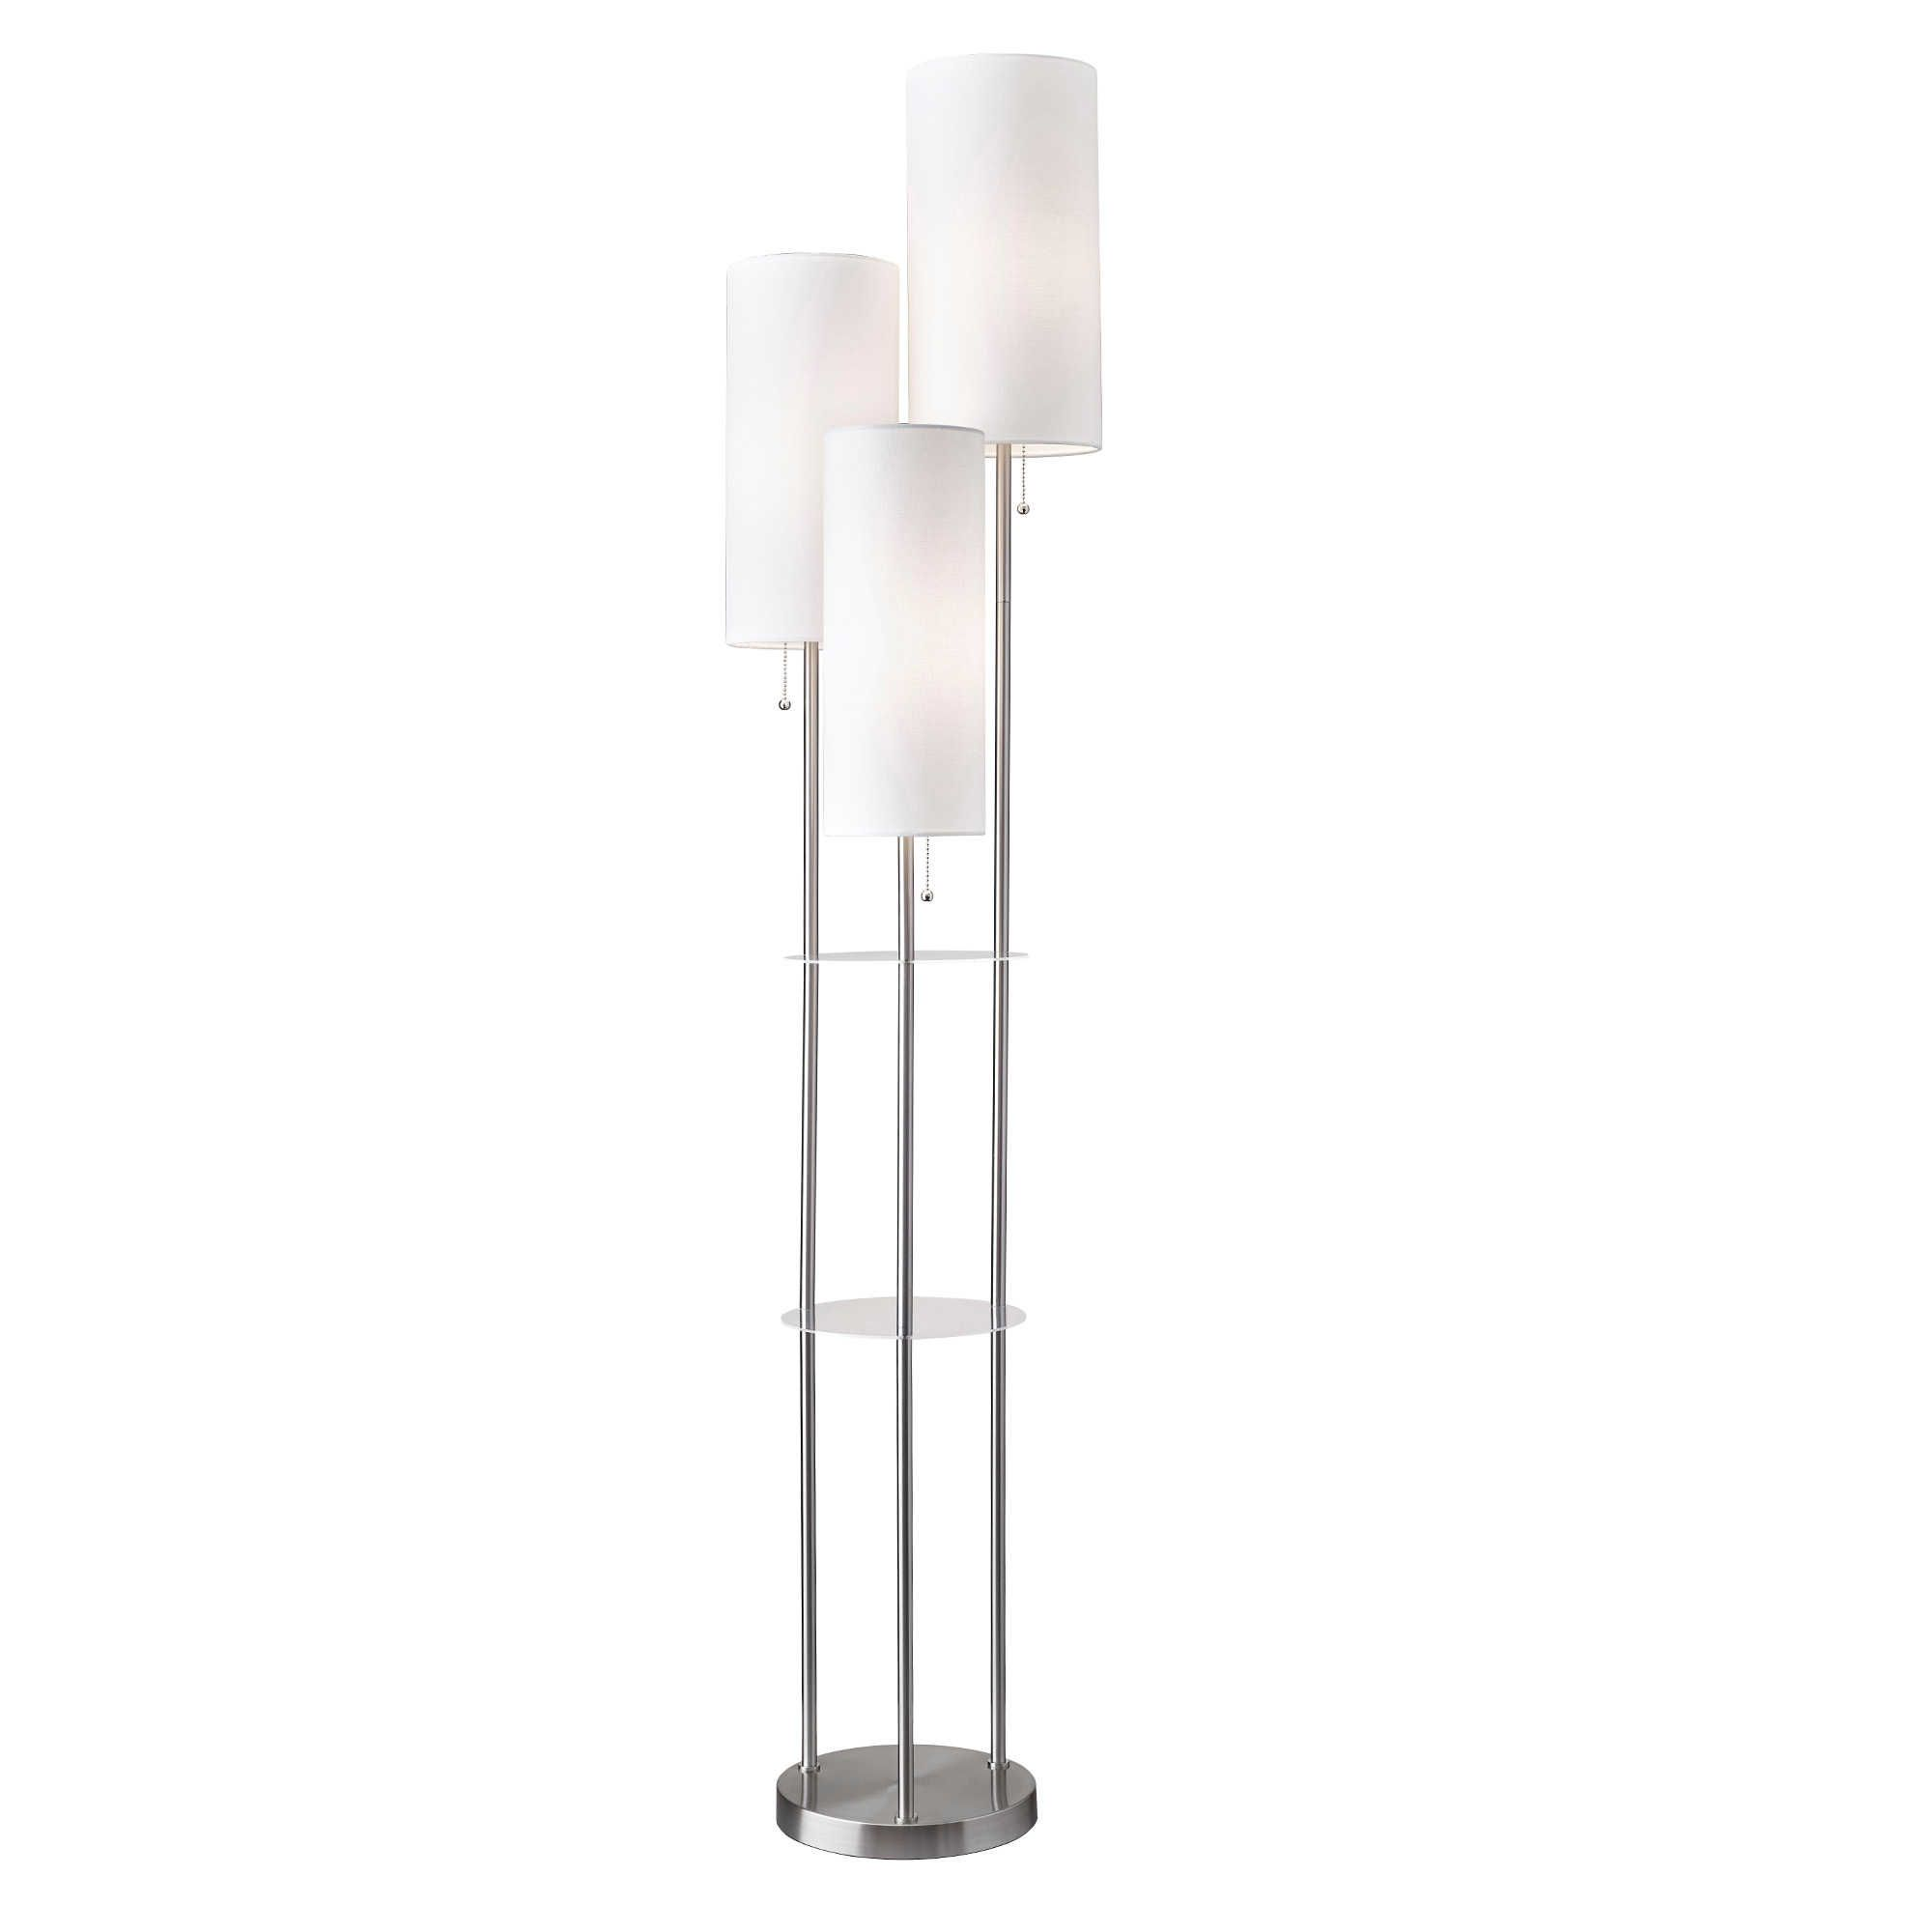 Adesso Trio Floor Lamp With Tables In Brushed Steel Bed Bath Beyond Steel Floor Lamps Floor Lamp Lamp